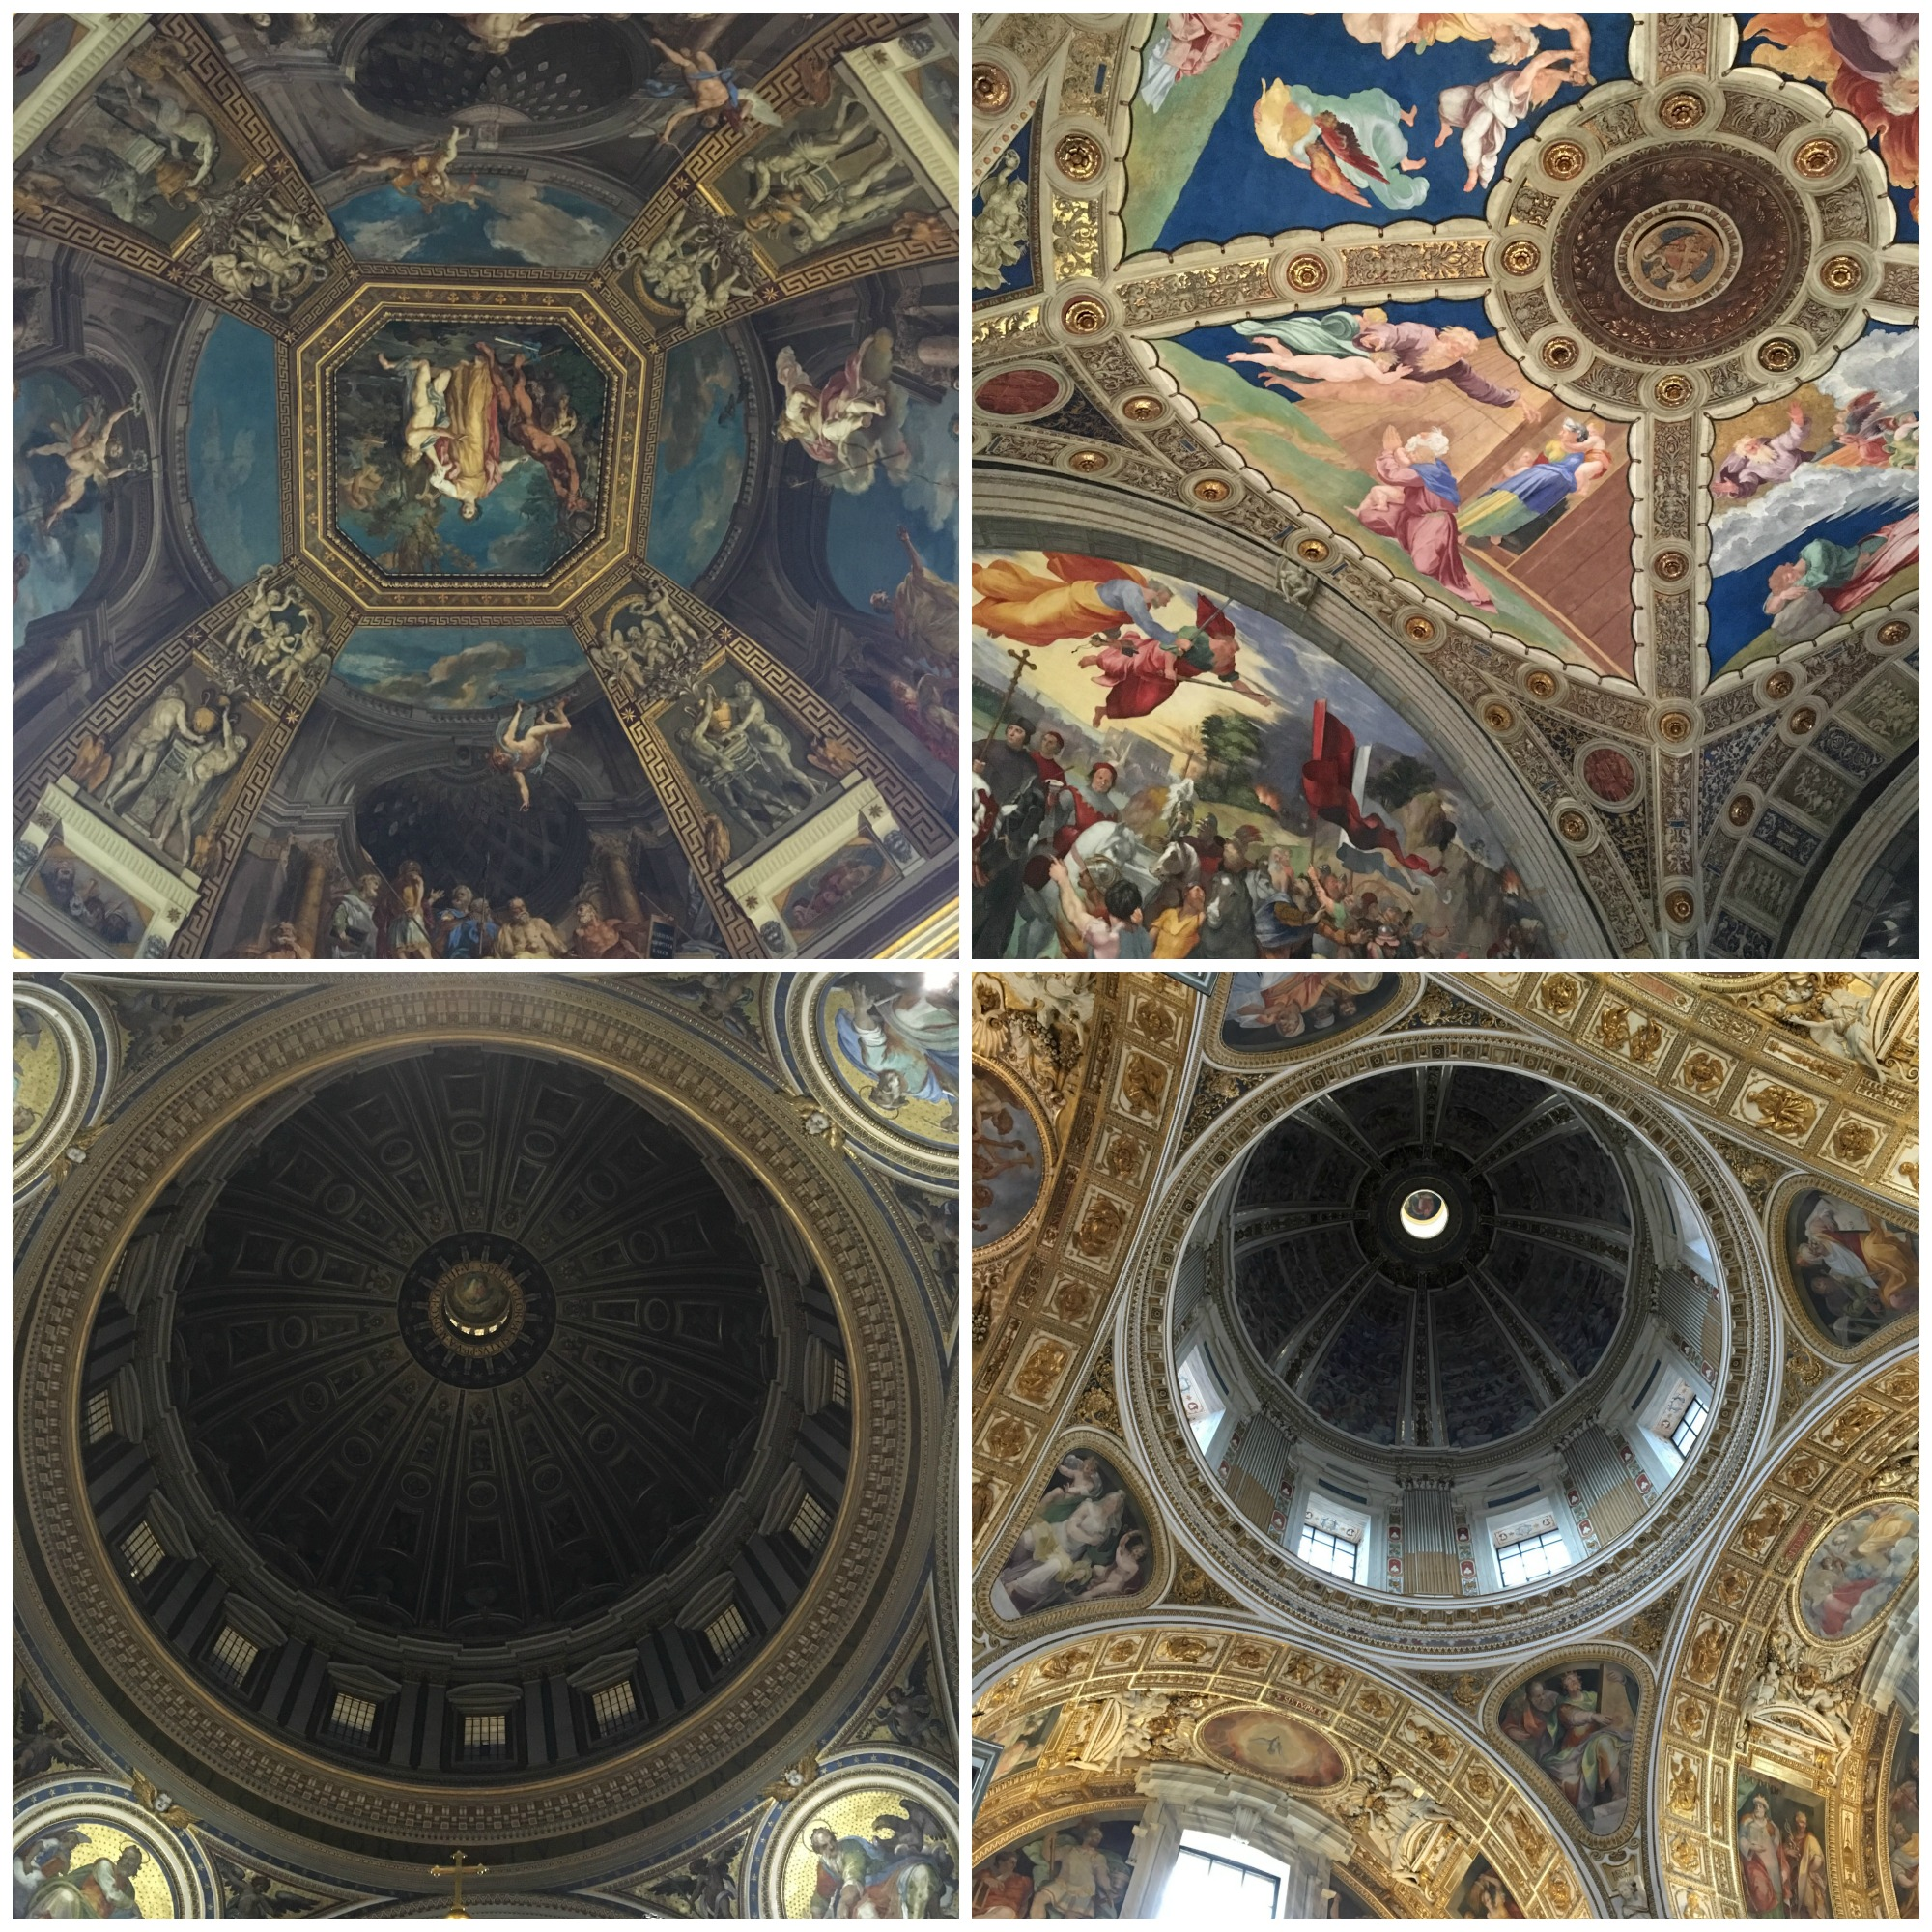 roman-ceilings-collage